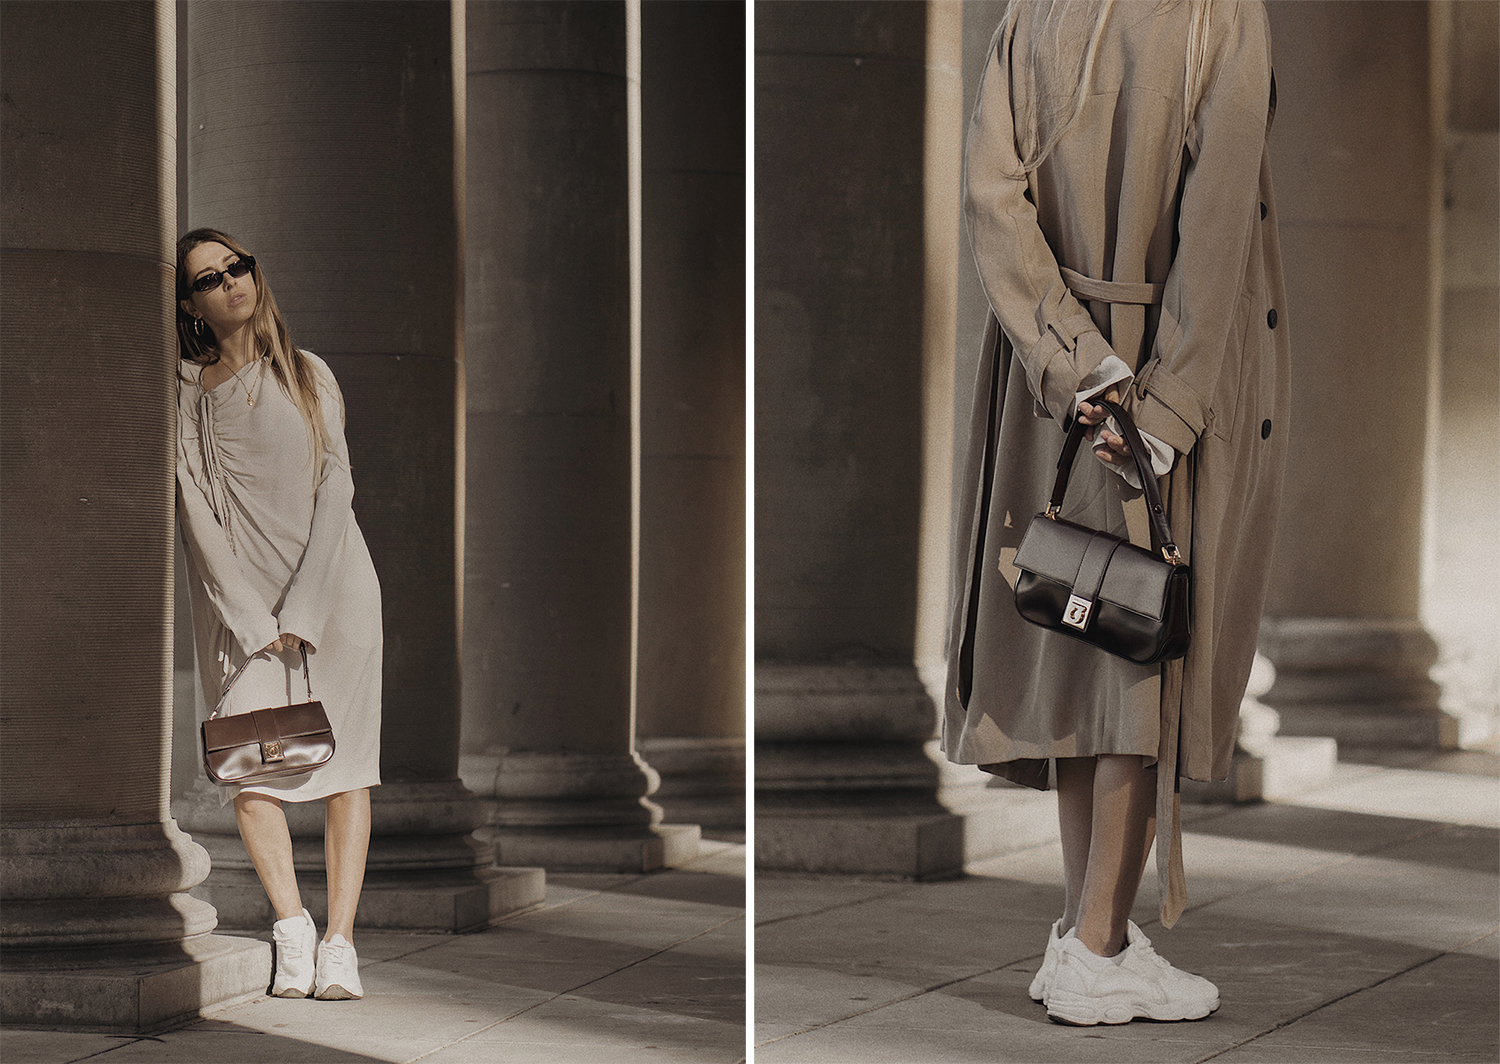 marni_dress_ferragamo_bag_ikrush_street_style_outfit_nyfw_mfw_zara_trench_coat_ugly_father_sneakers_the_white_ocean_lena_juice_09